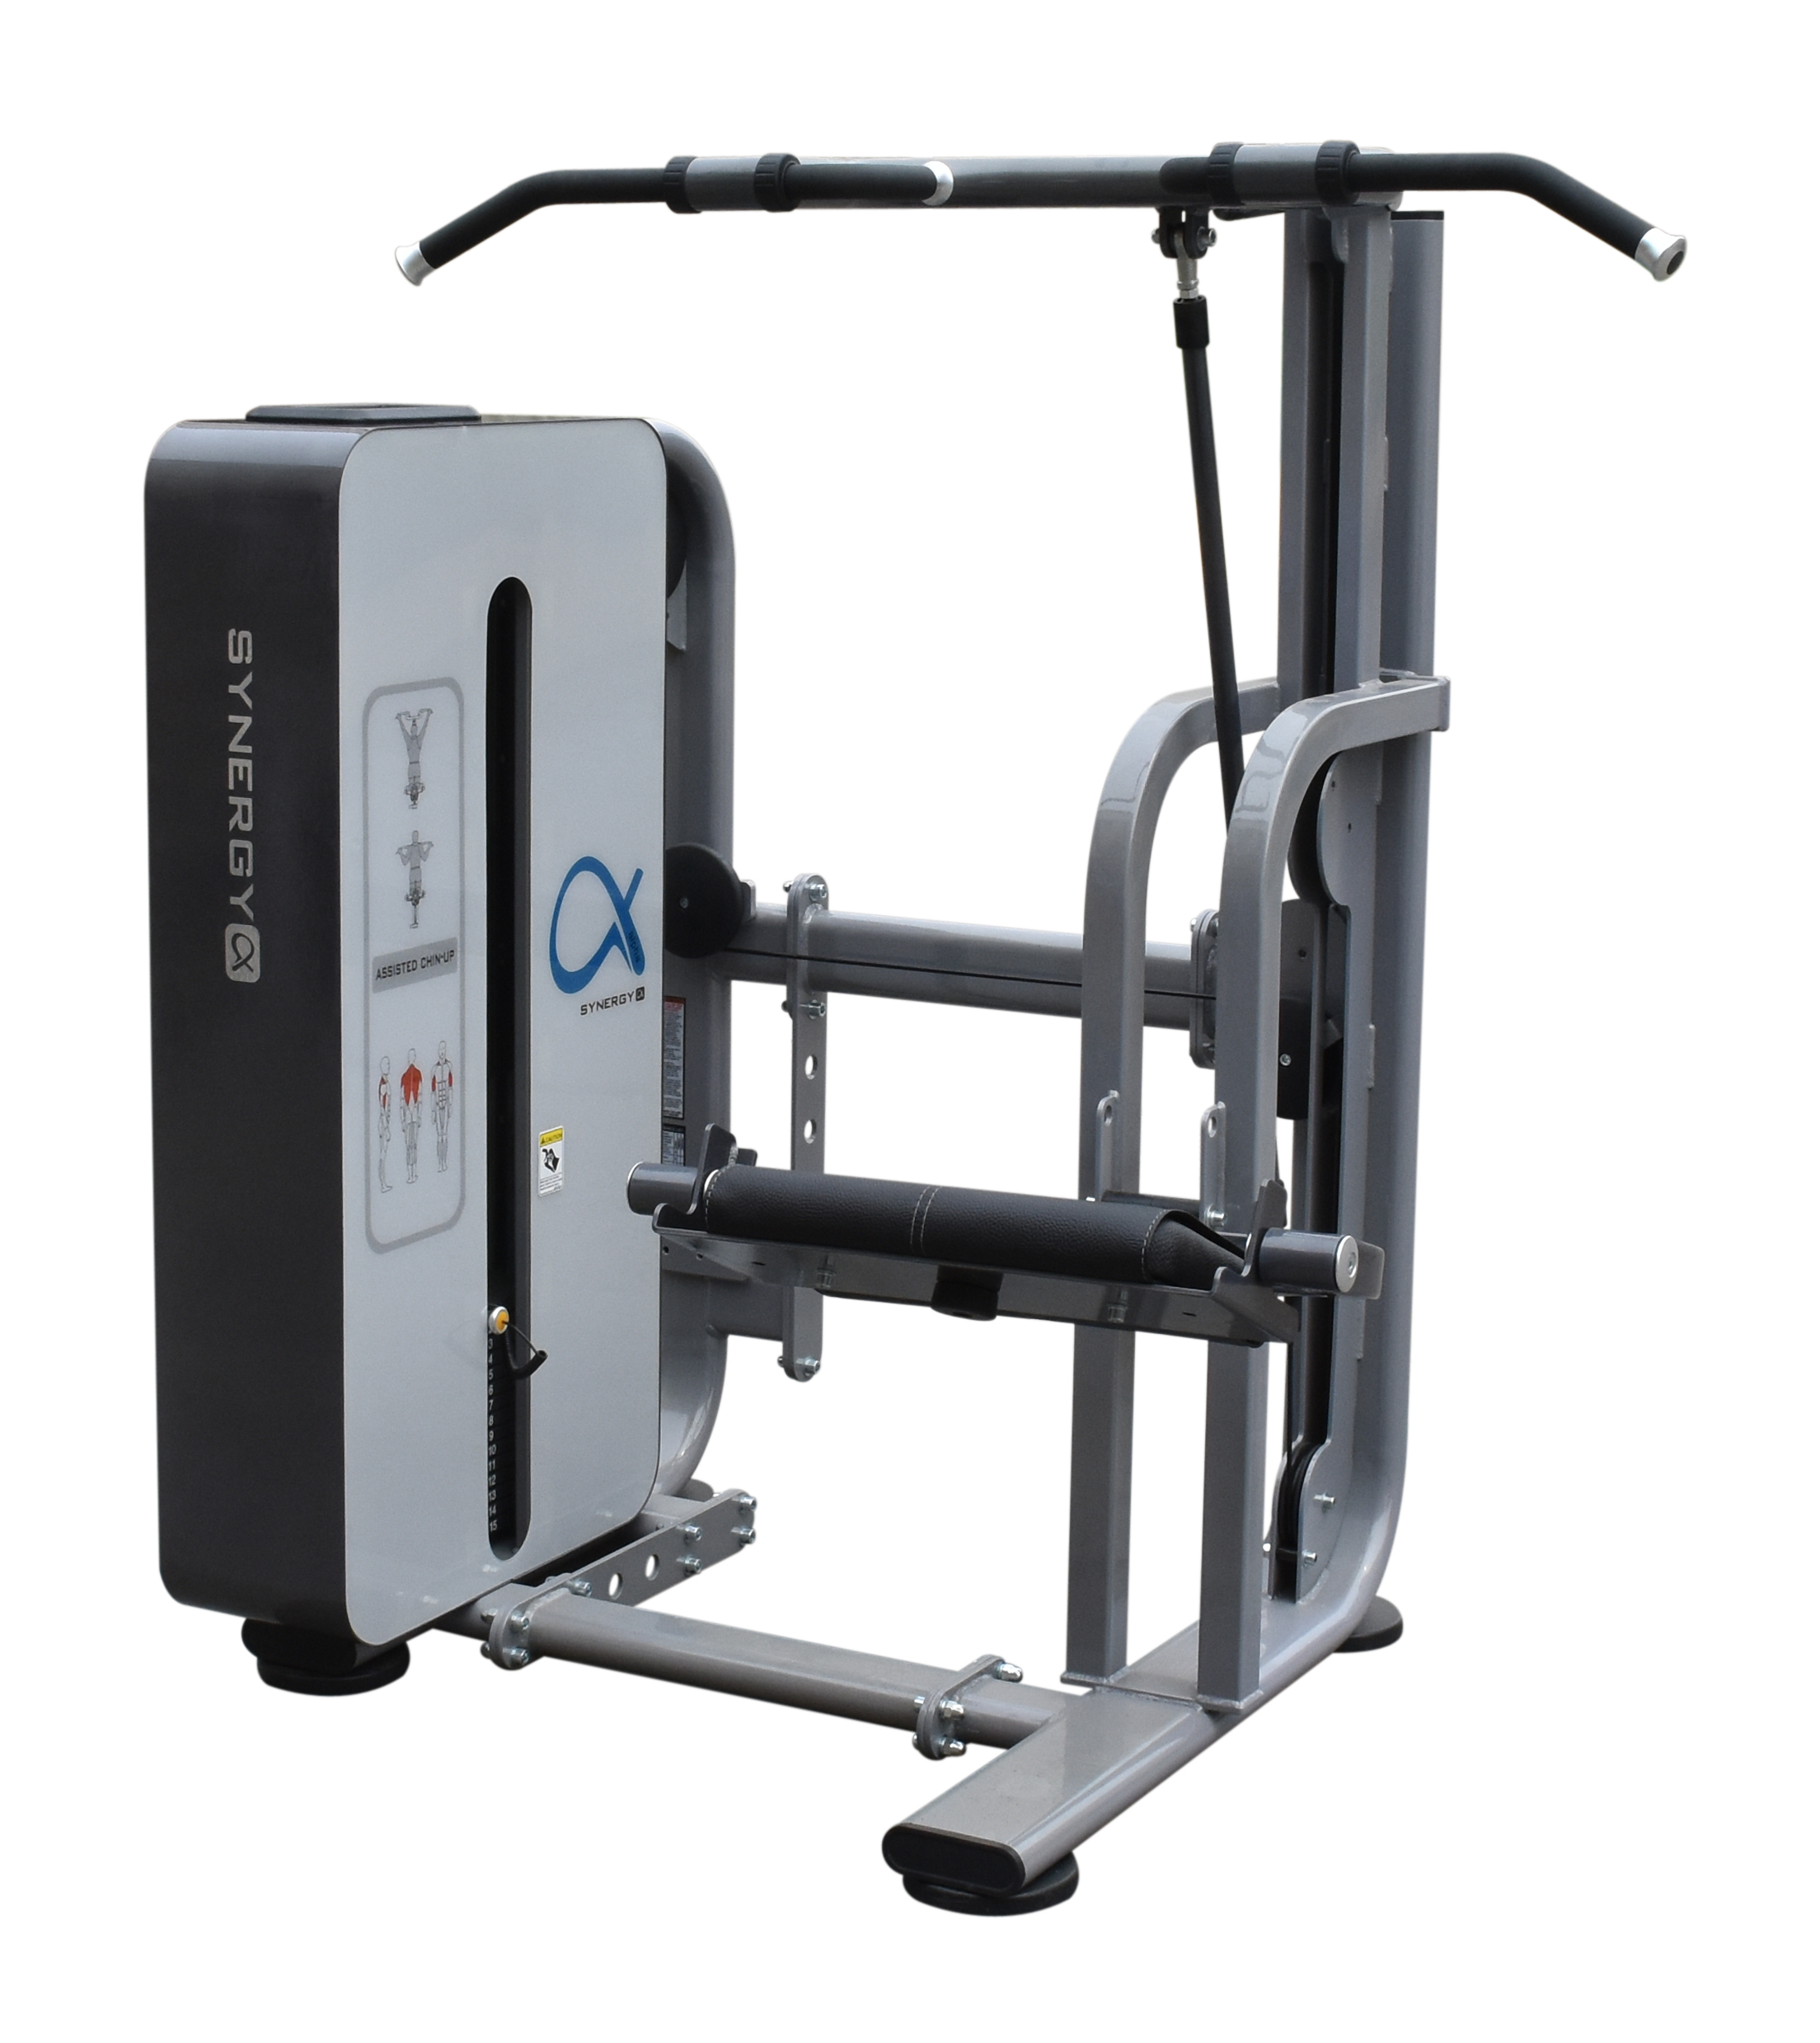 Synergy exercise equipment